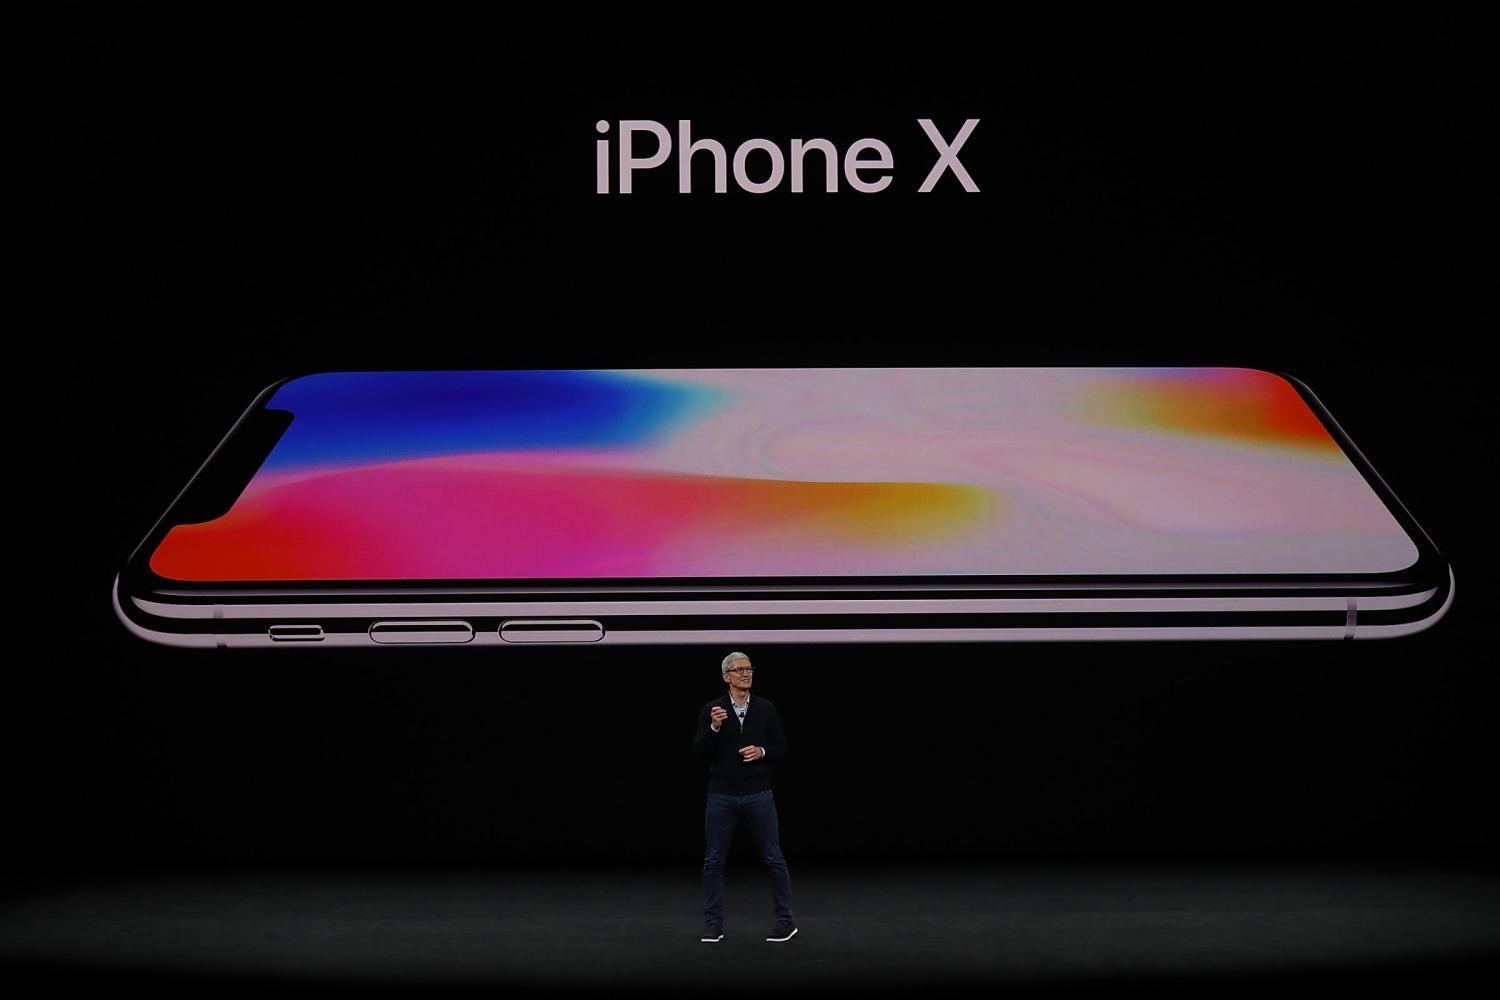 Tim Cook revealing and talking about the iPhone X.